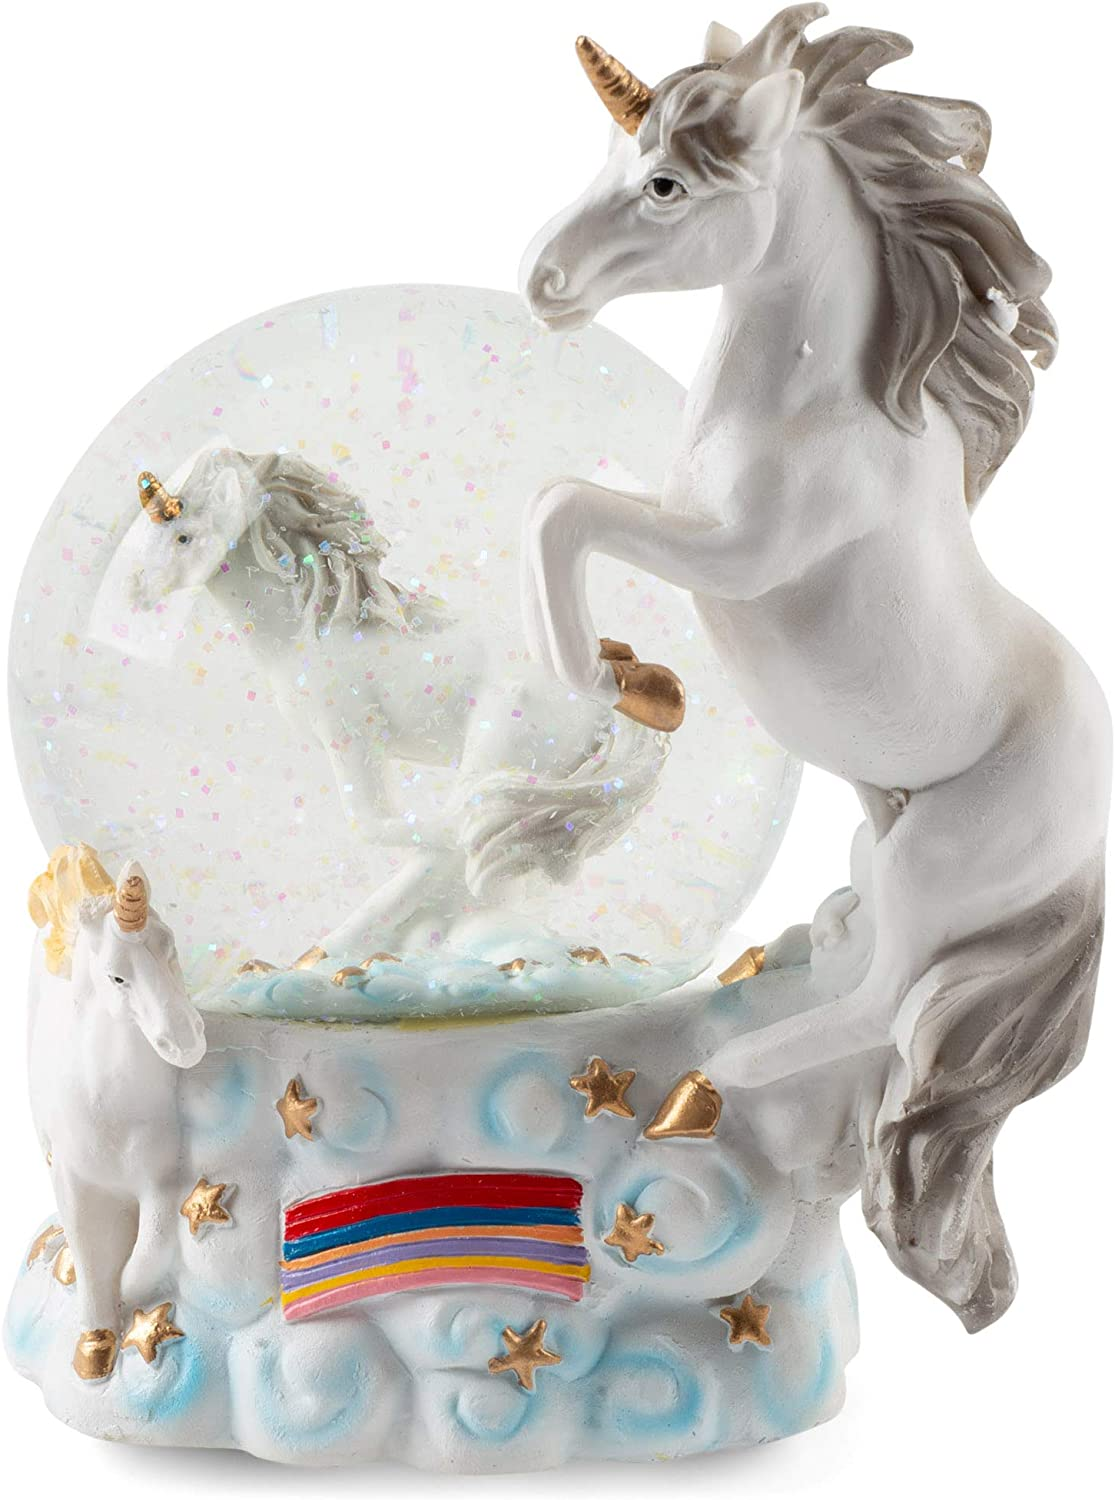 Elanze Designs Mystical Unicorns Figurine 100MM Water Globe Plays Tune You are My Sunshine